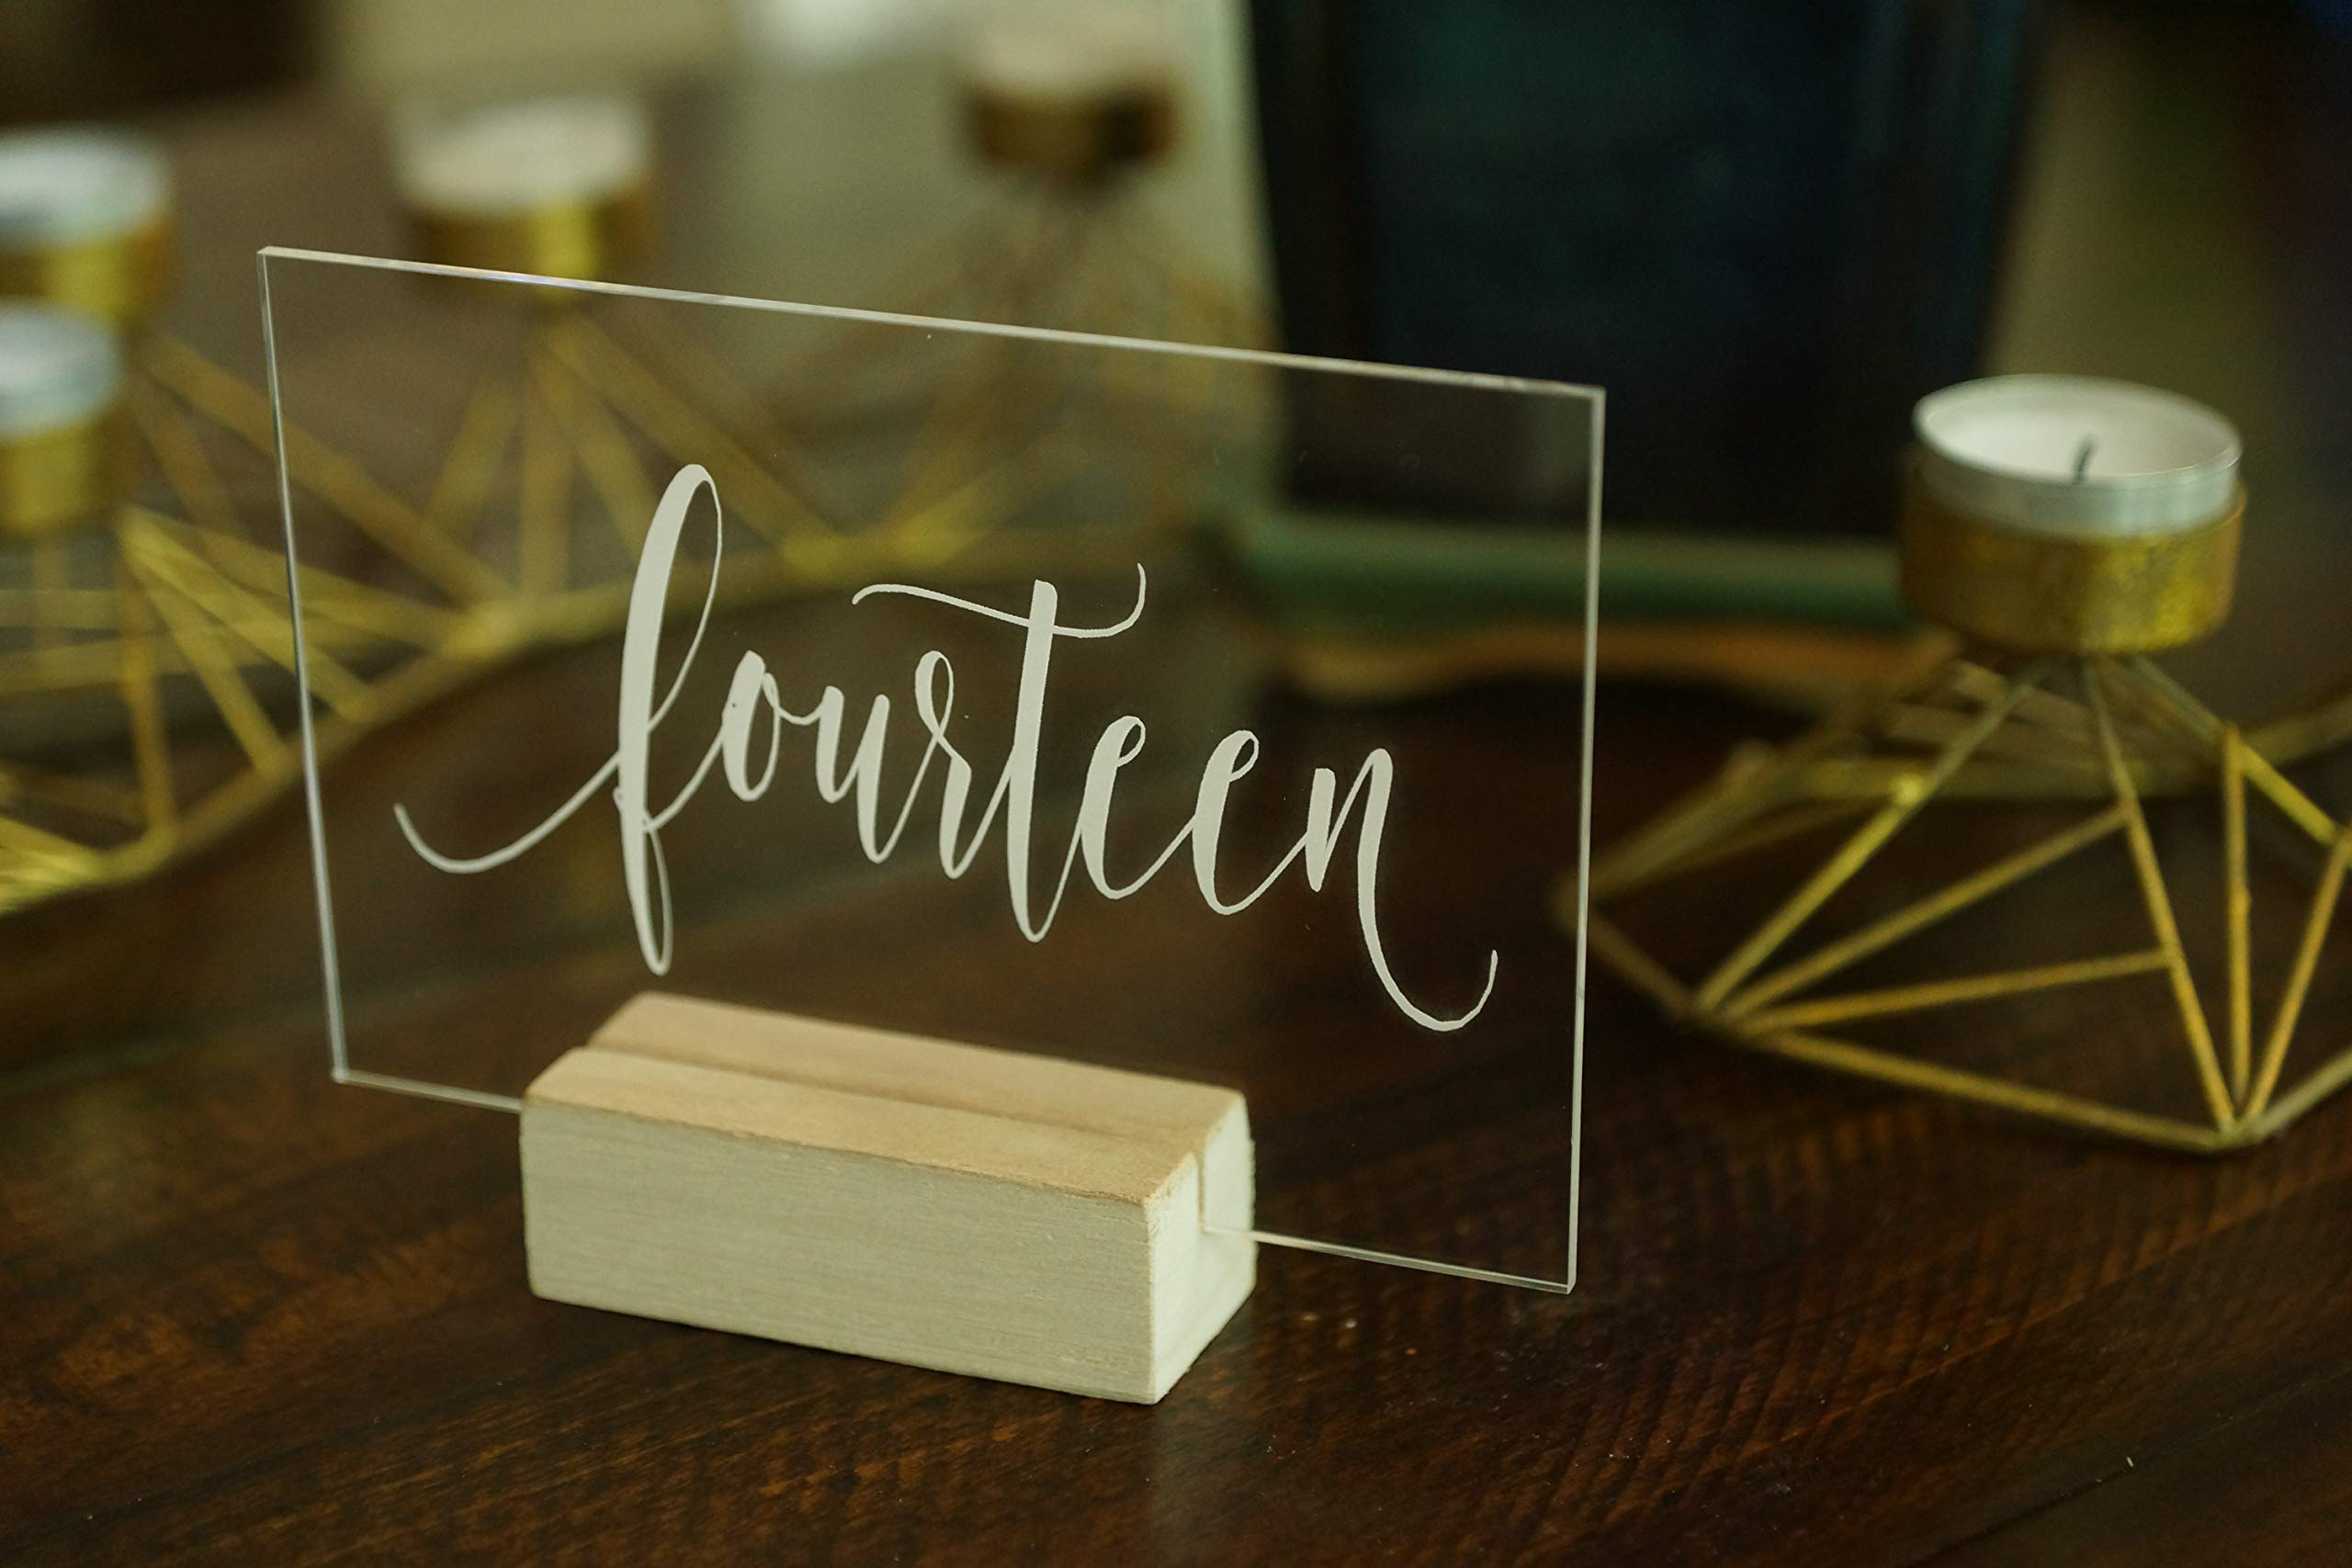 Set of 20 Acrylic Calligraphy Table Numbers   Wedding Event Shower Reception Restaurant   Glass like Clear Modern Formal Elegant Vintage Rustic   Sign Placard Card   Lettering Script Handwriting Print by Generic (Image #8)